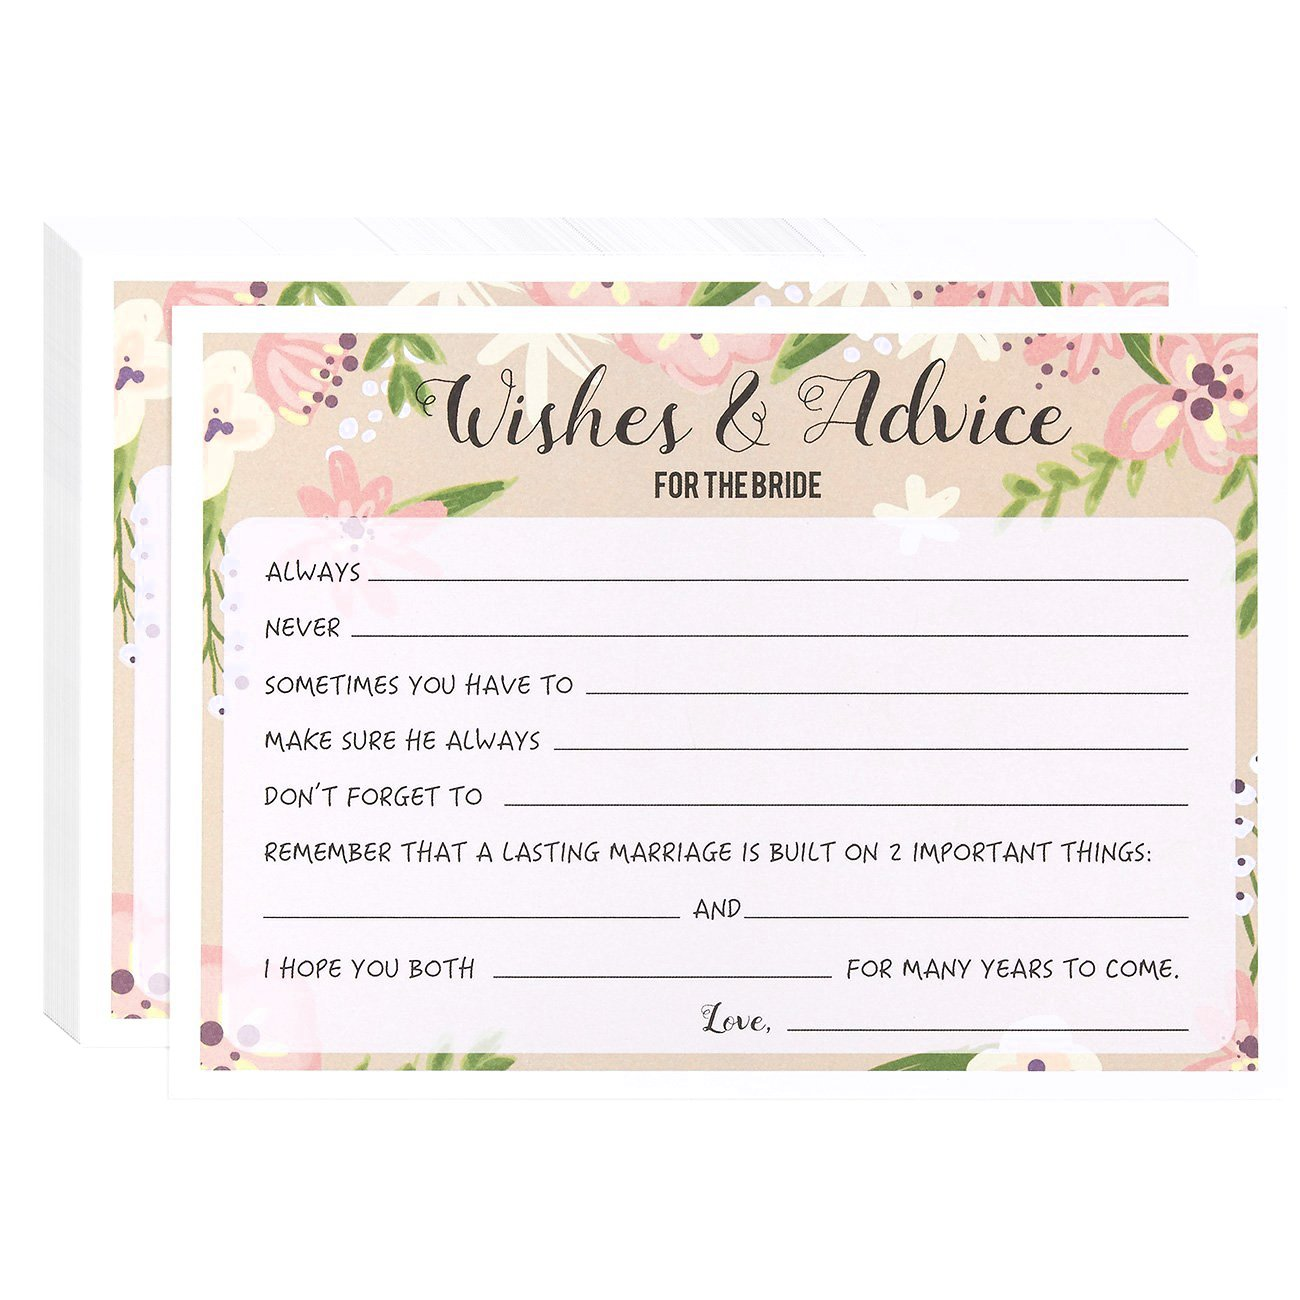 d7f1ee9e4cc Amazon.com  Marriage Advice and Well Wishes for Bridal Shower - 50 Sheet  Floral Wedding Game Cards